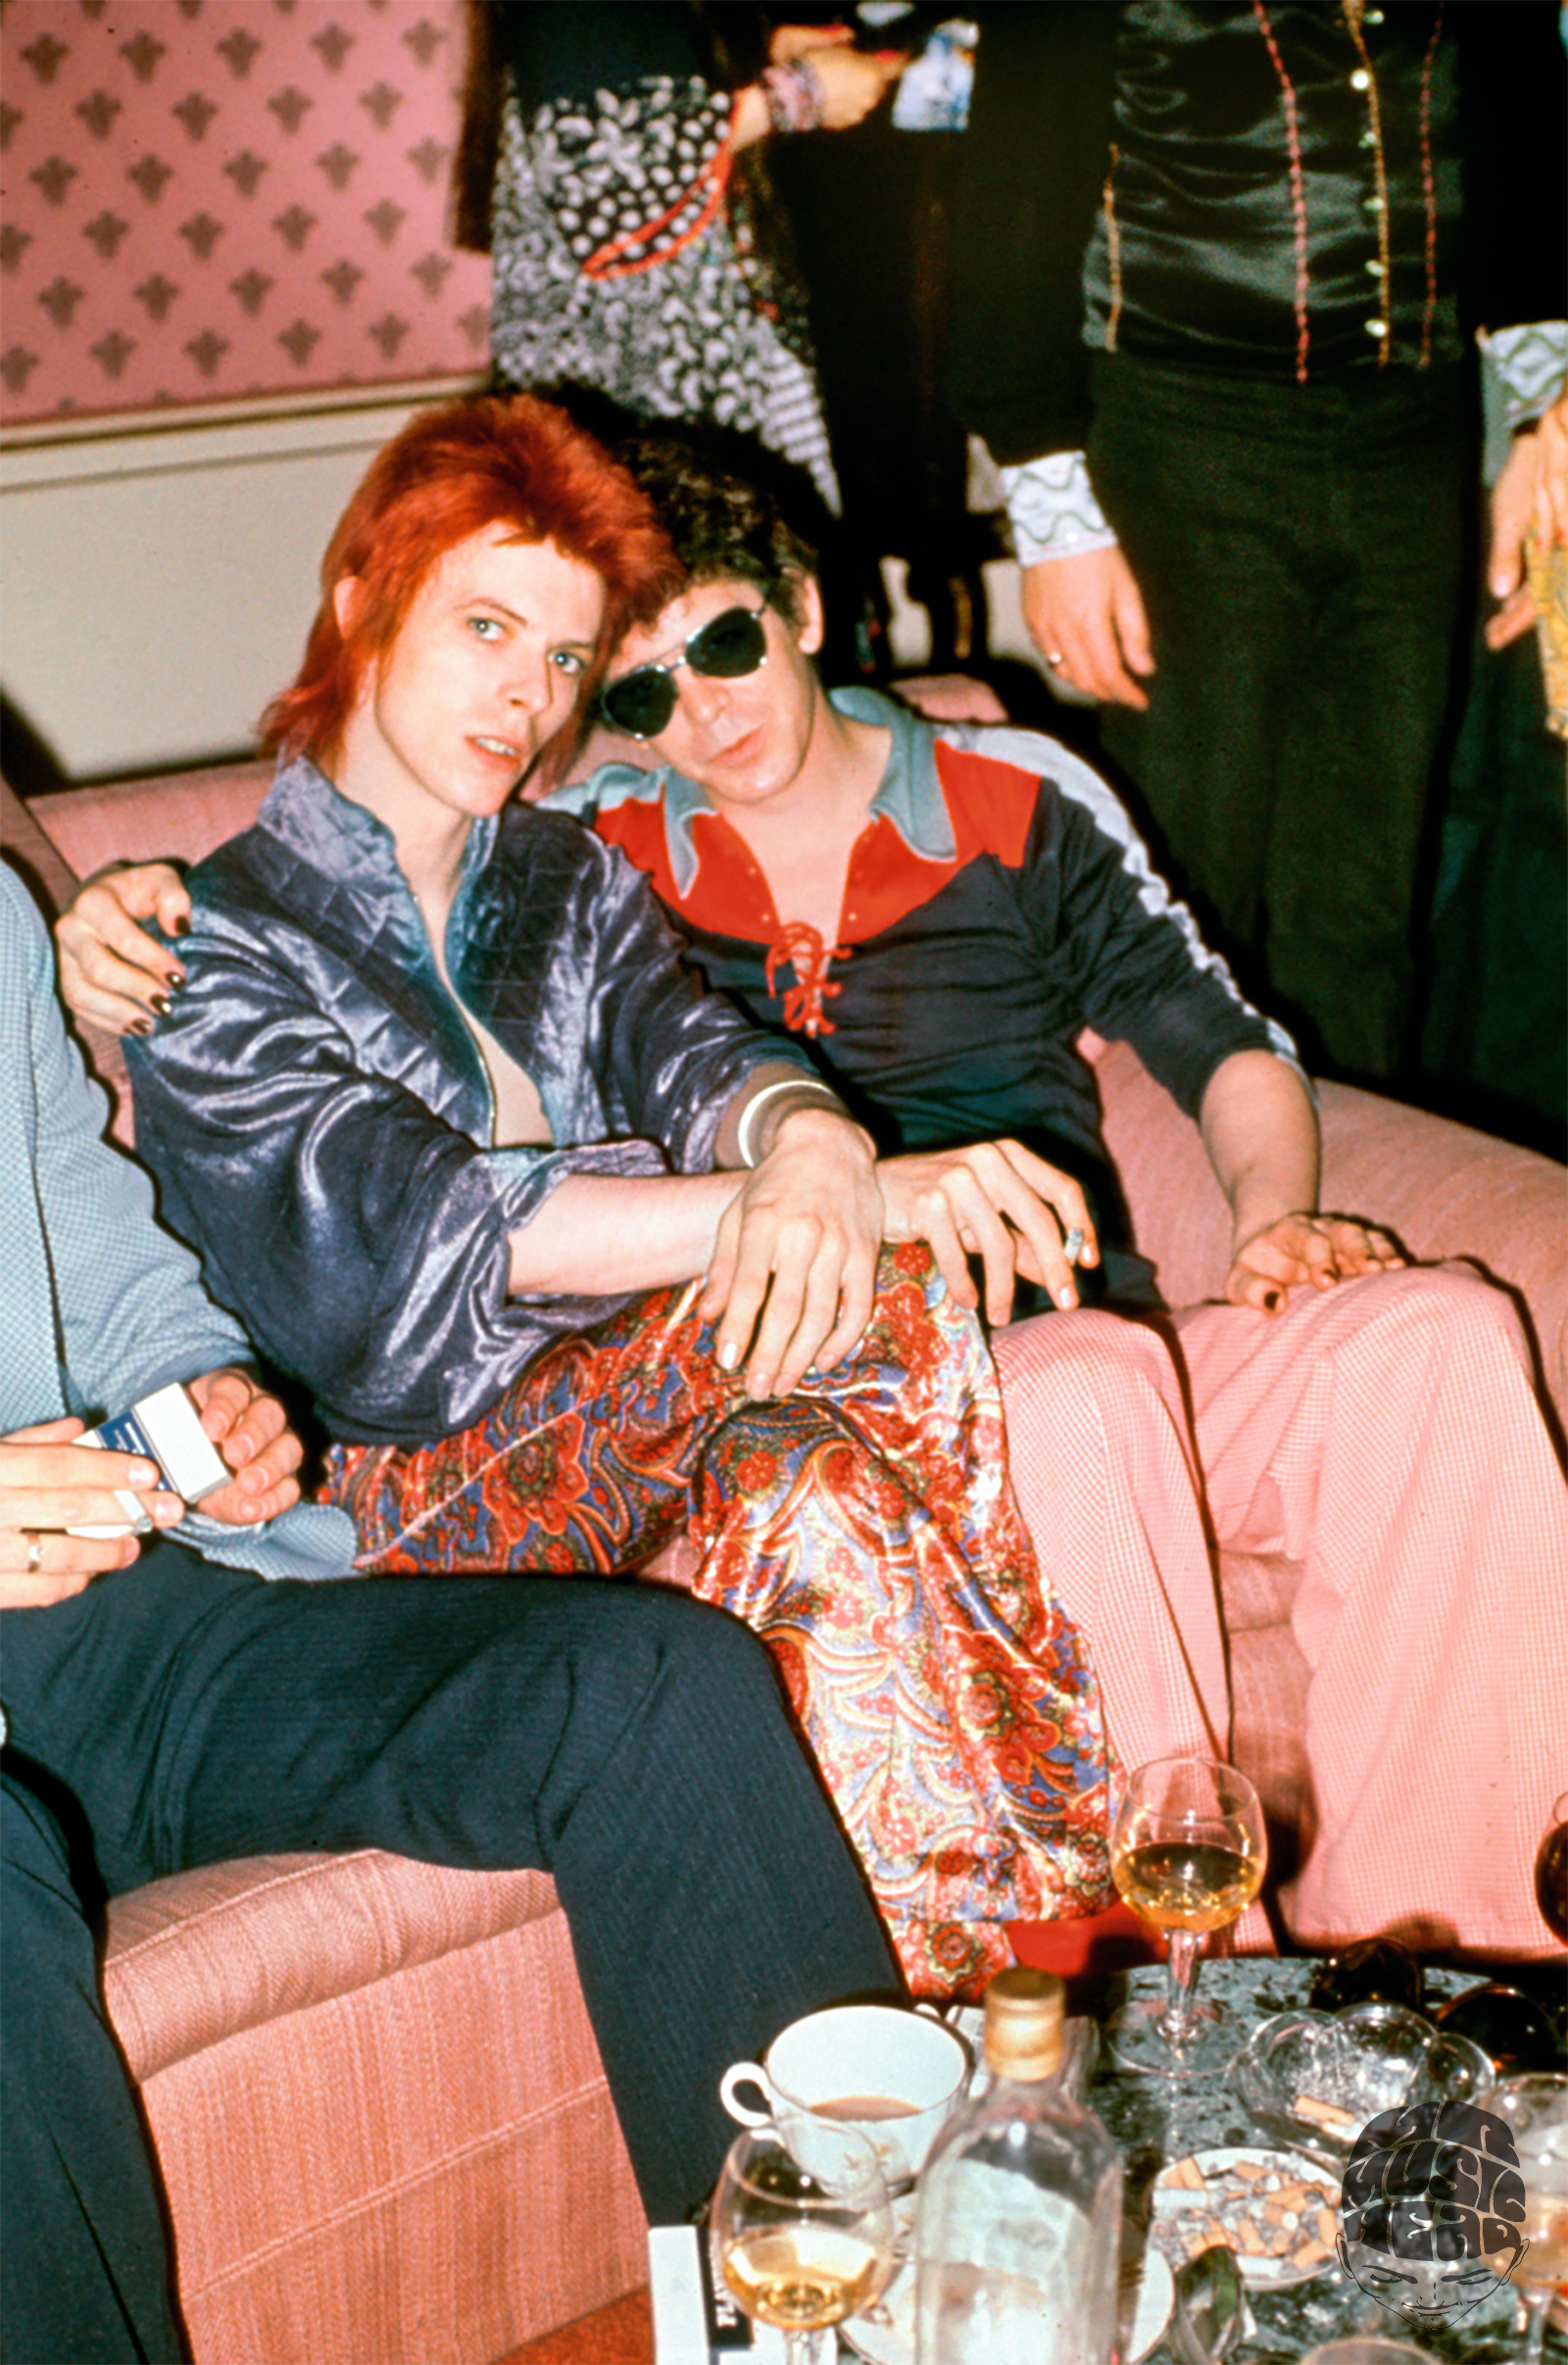 mick rock_david bowie_lou reed_dorchester hotel london.jpg